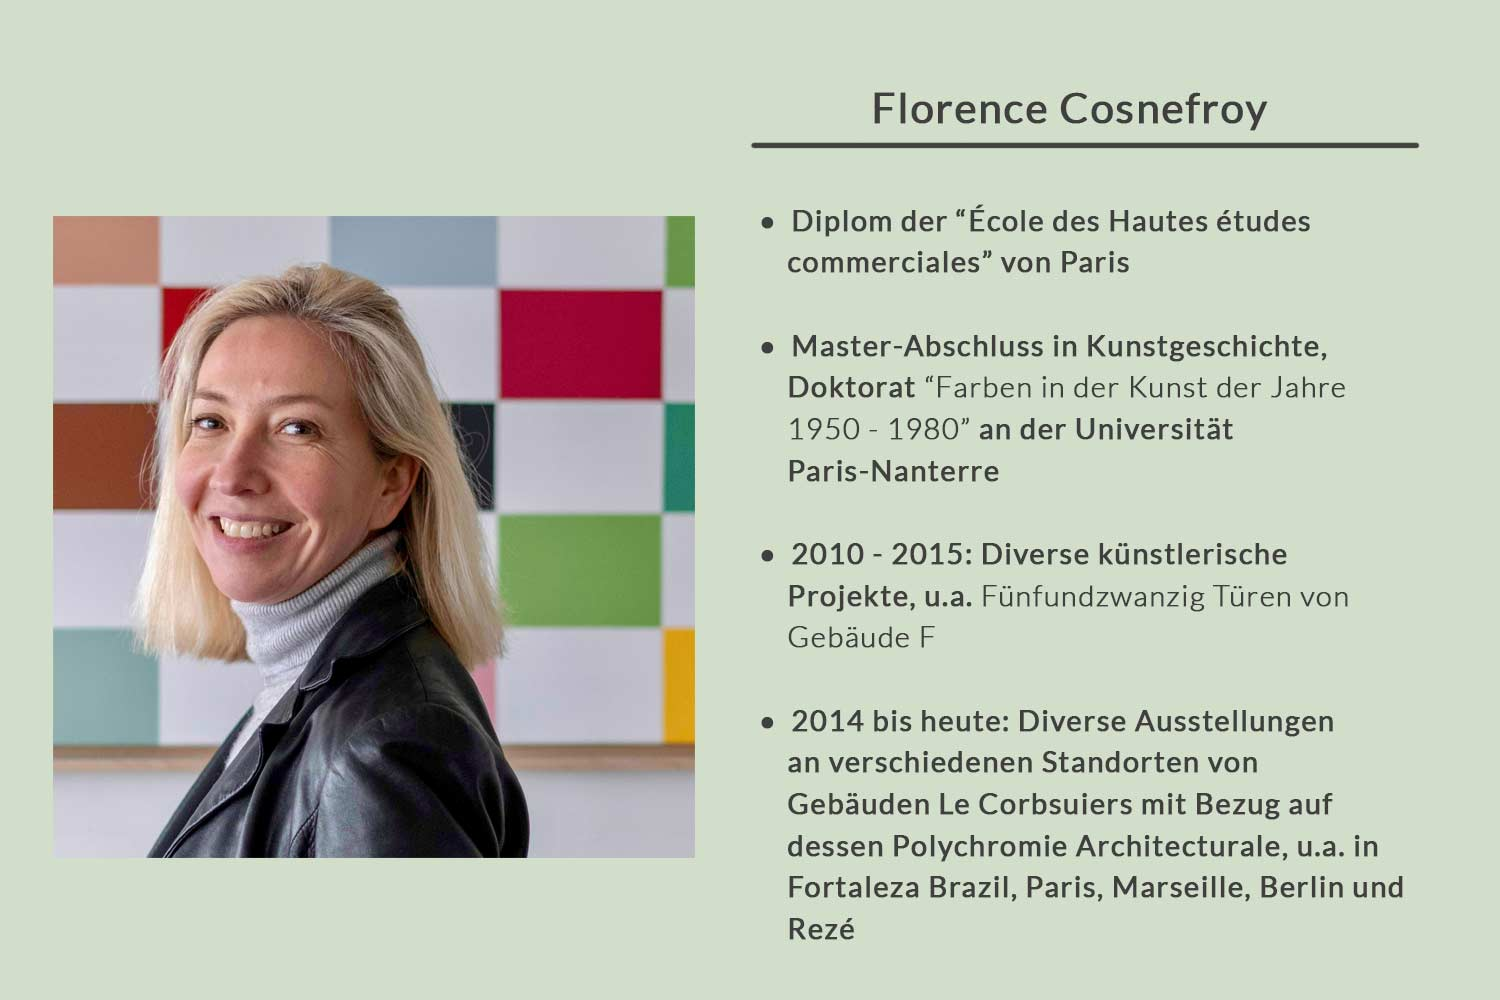 BioBox Florence Cosneyfroy